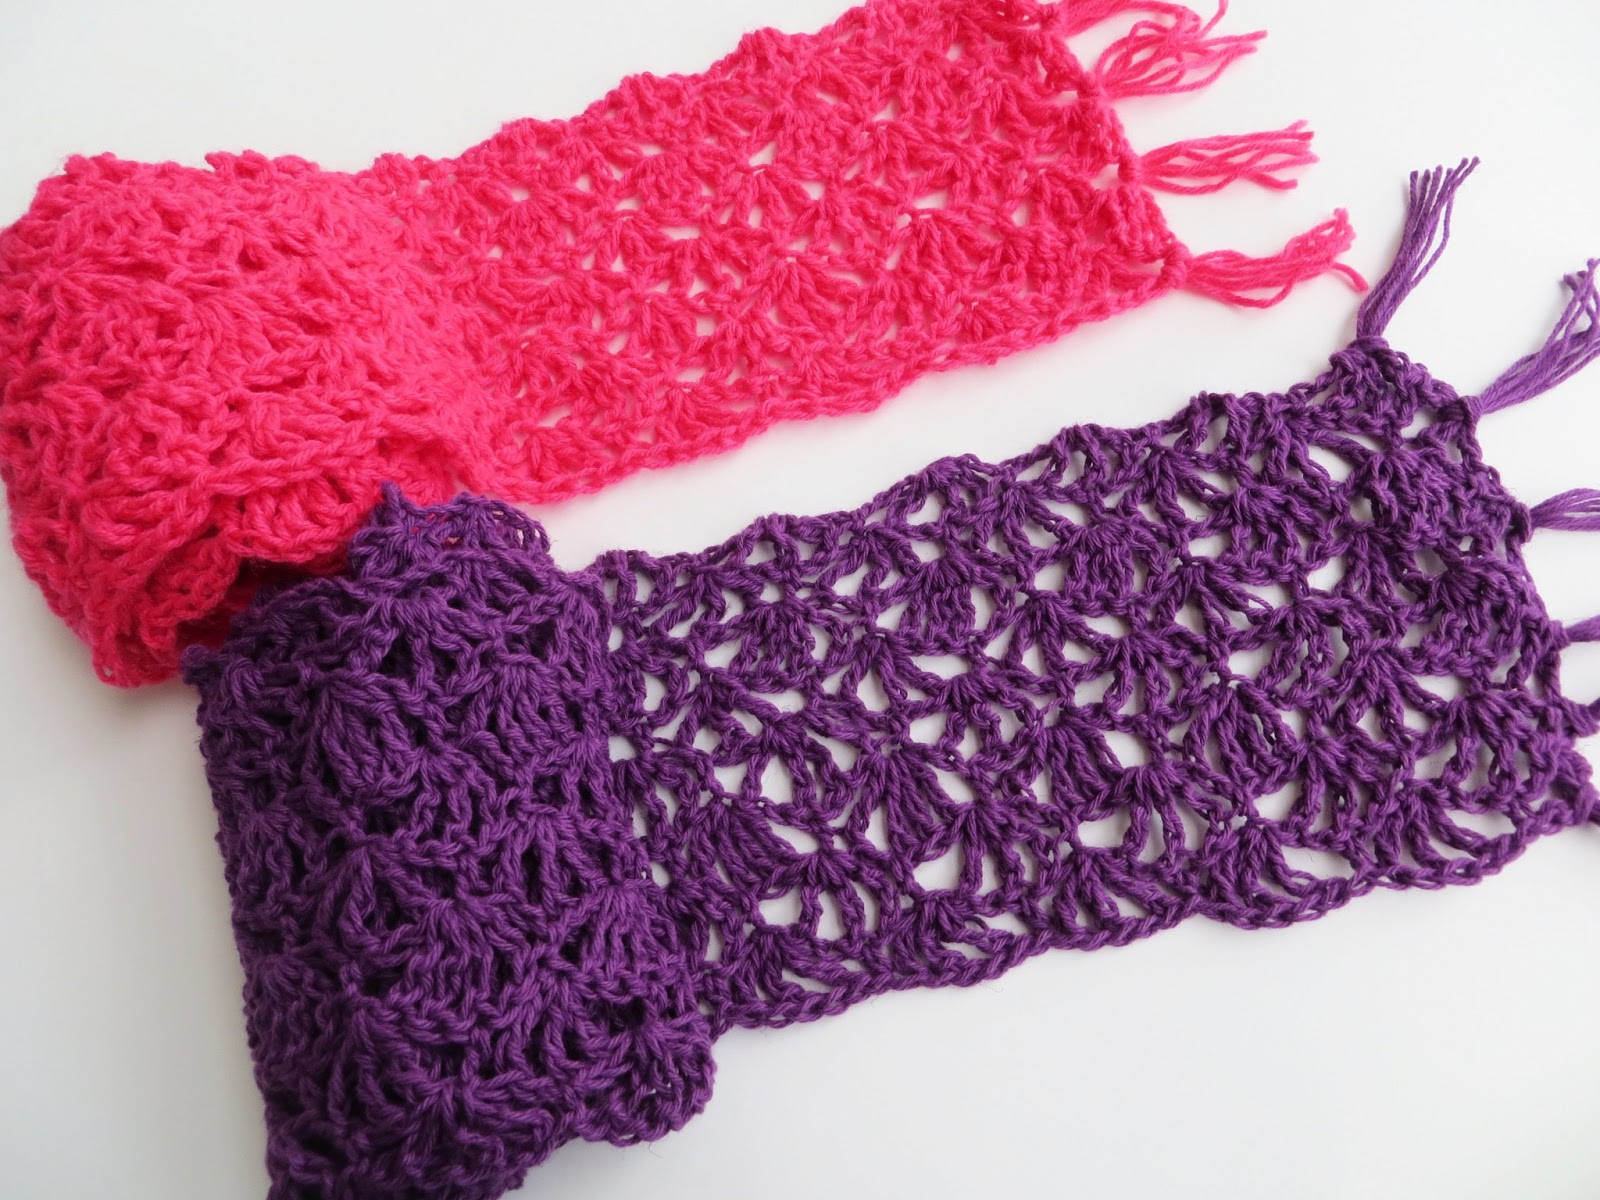 Crochet Ideas : Crochet Dreamz: Alana Lacy Scarf, Free Crochet Pattern